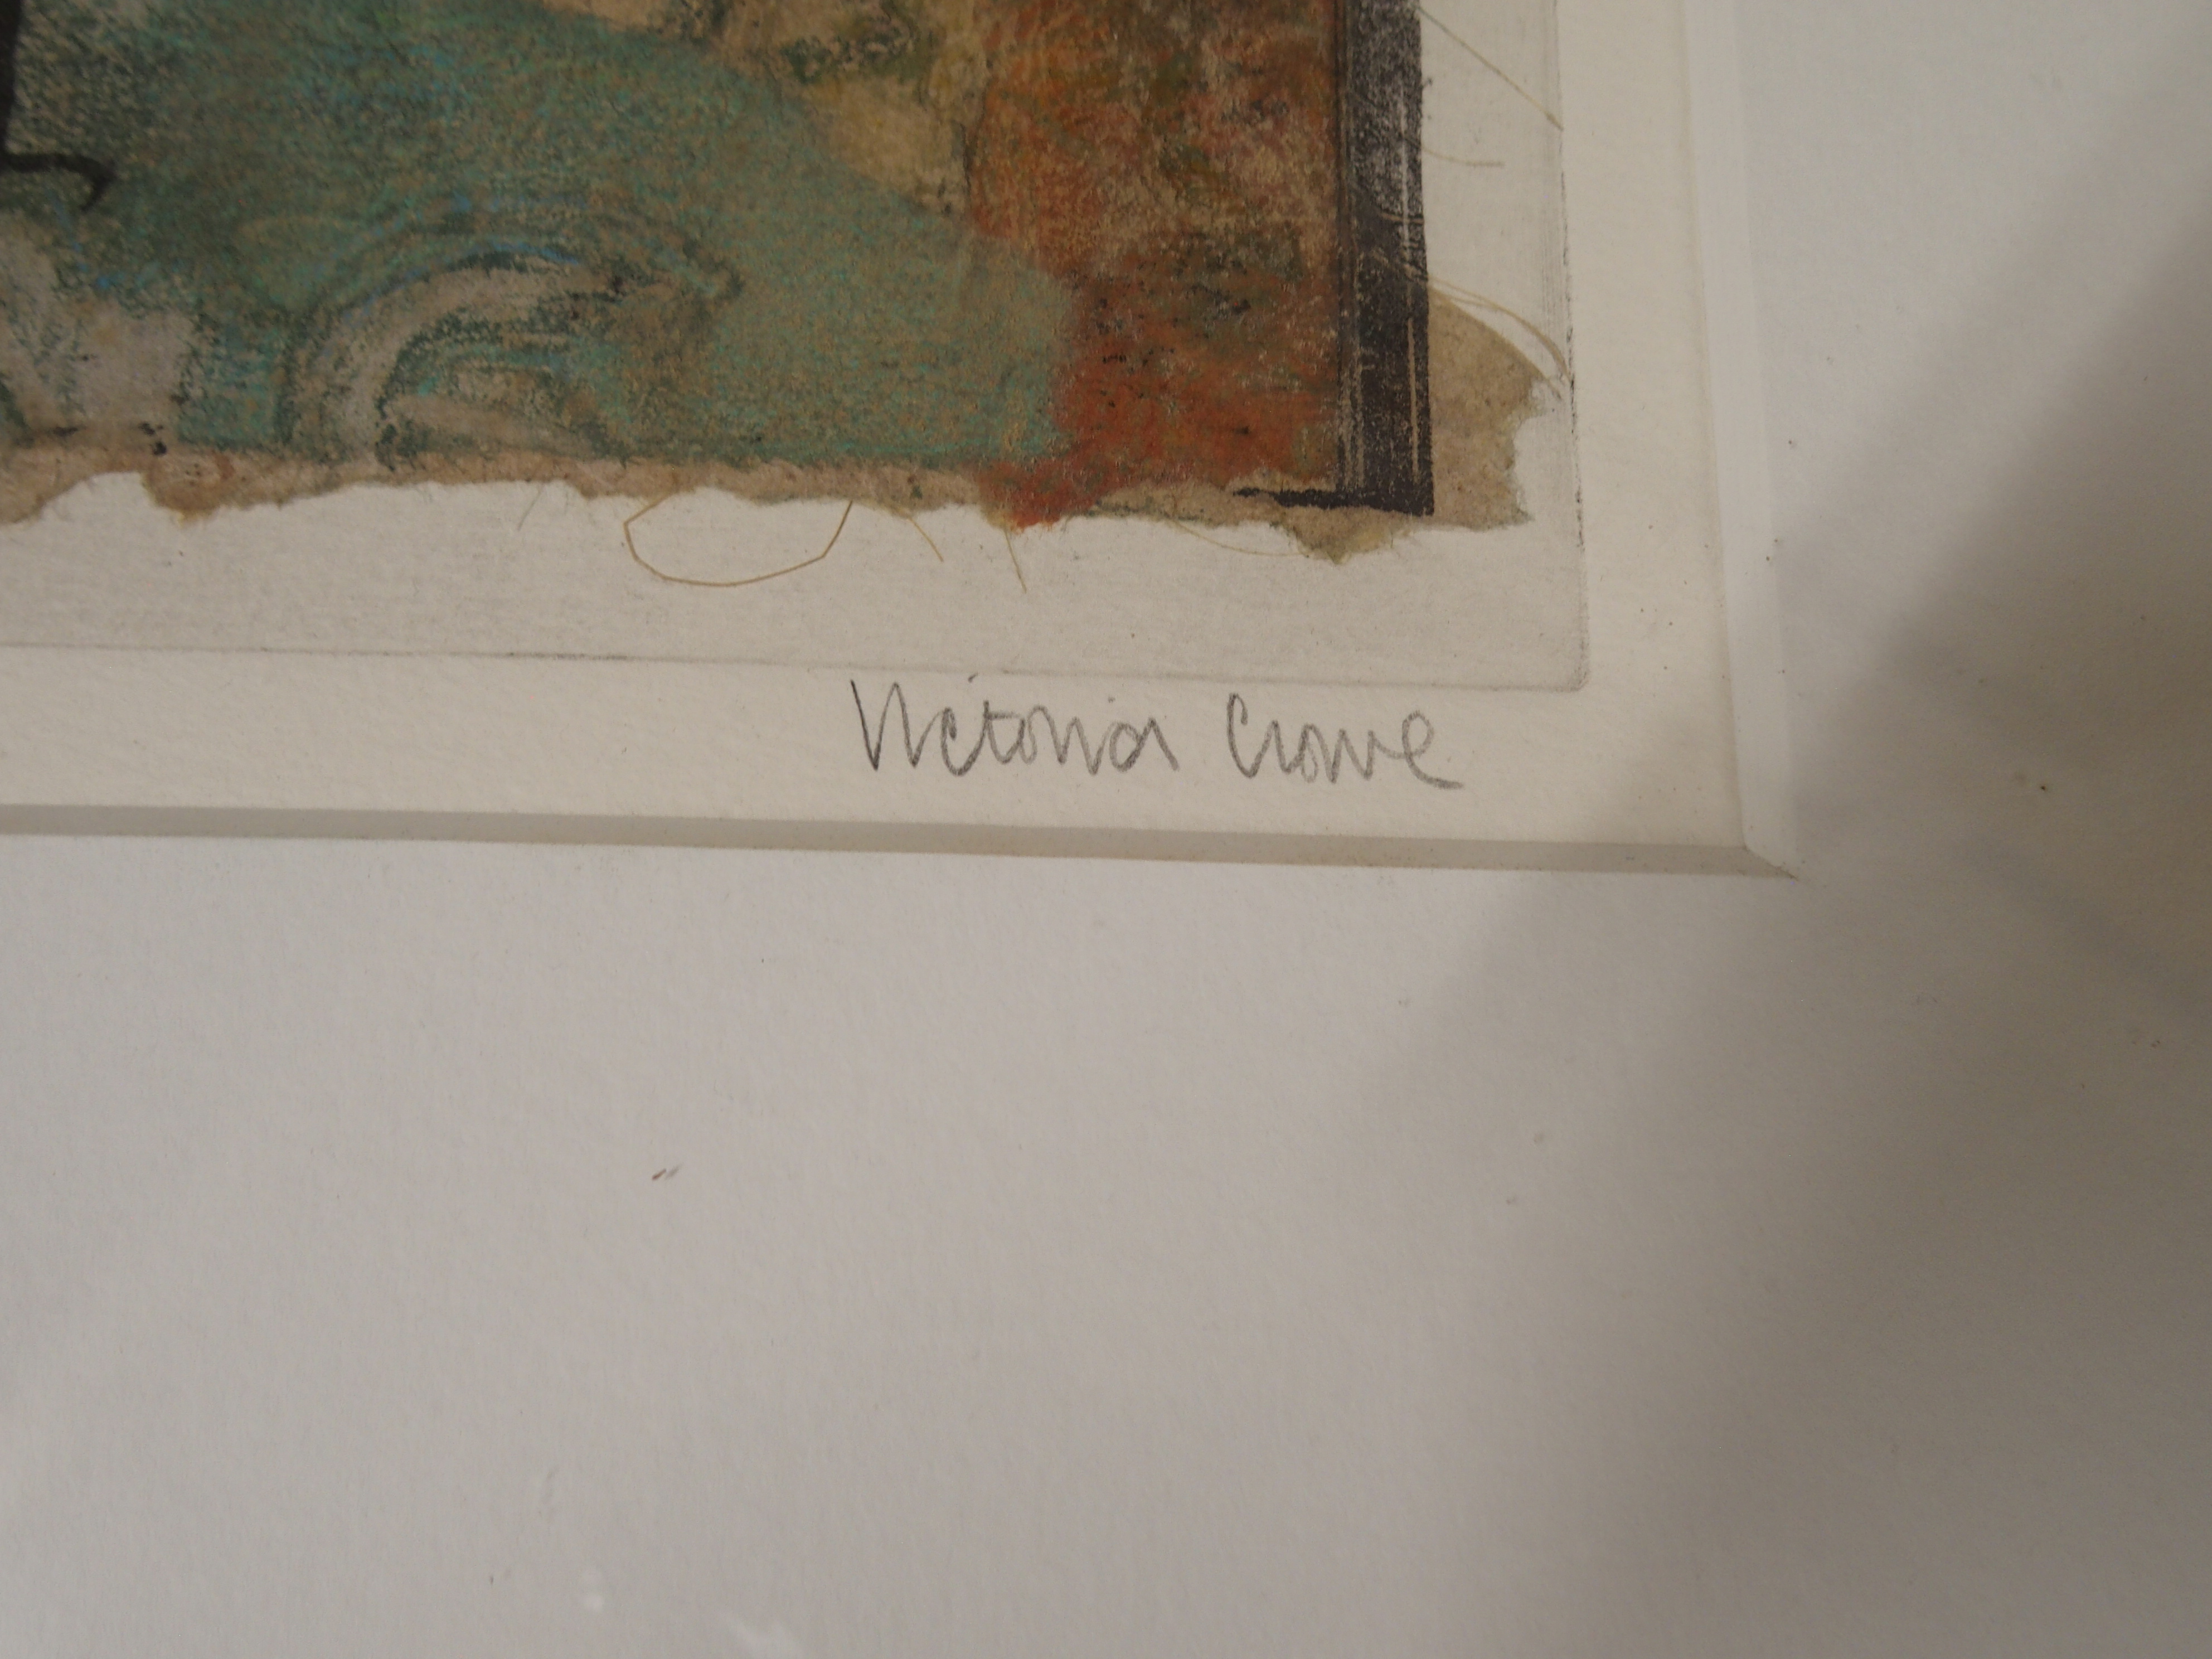 •VICTORIA CROWE OBE, RSA, RSW, FRSE (SCOTTISH B. 1945) WALL AT THE ZATTERE Mixed media on handmade - Image 3 of 7